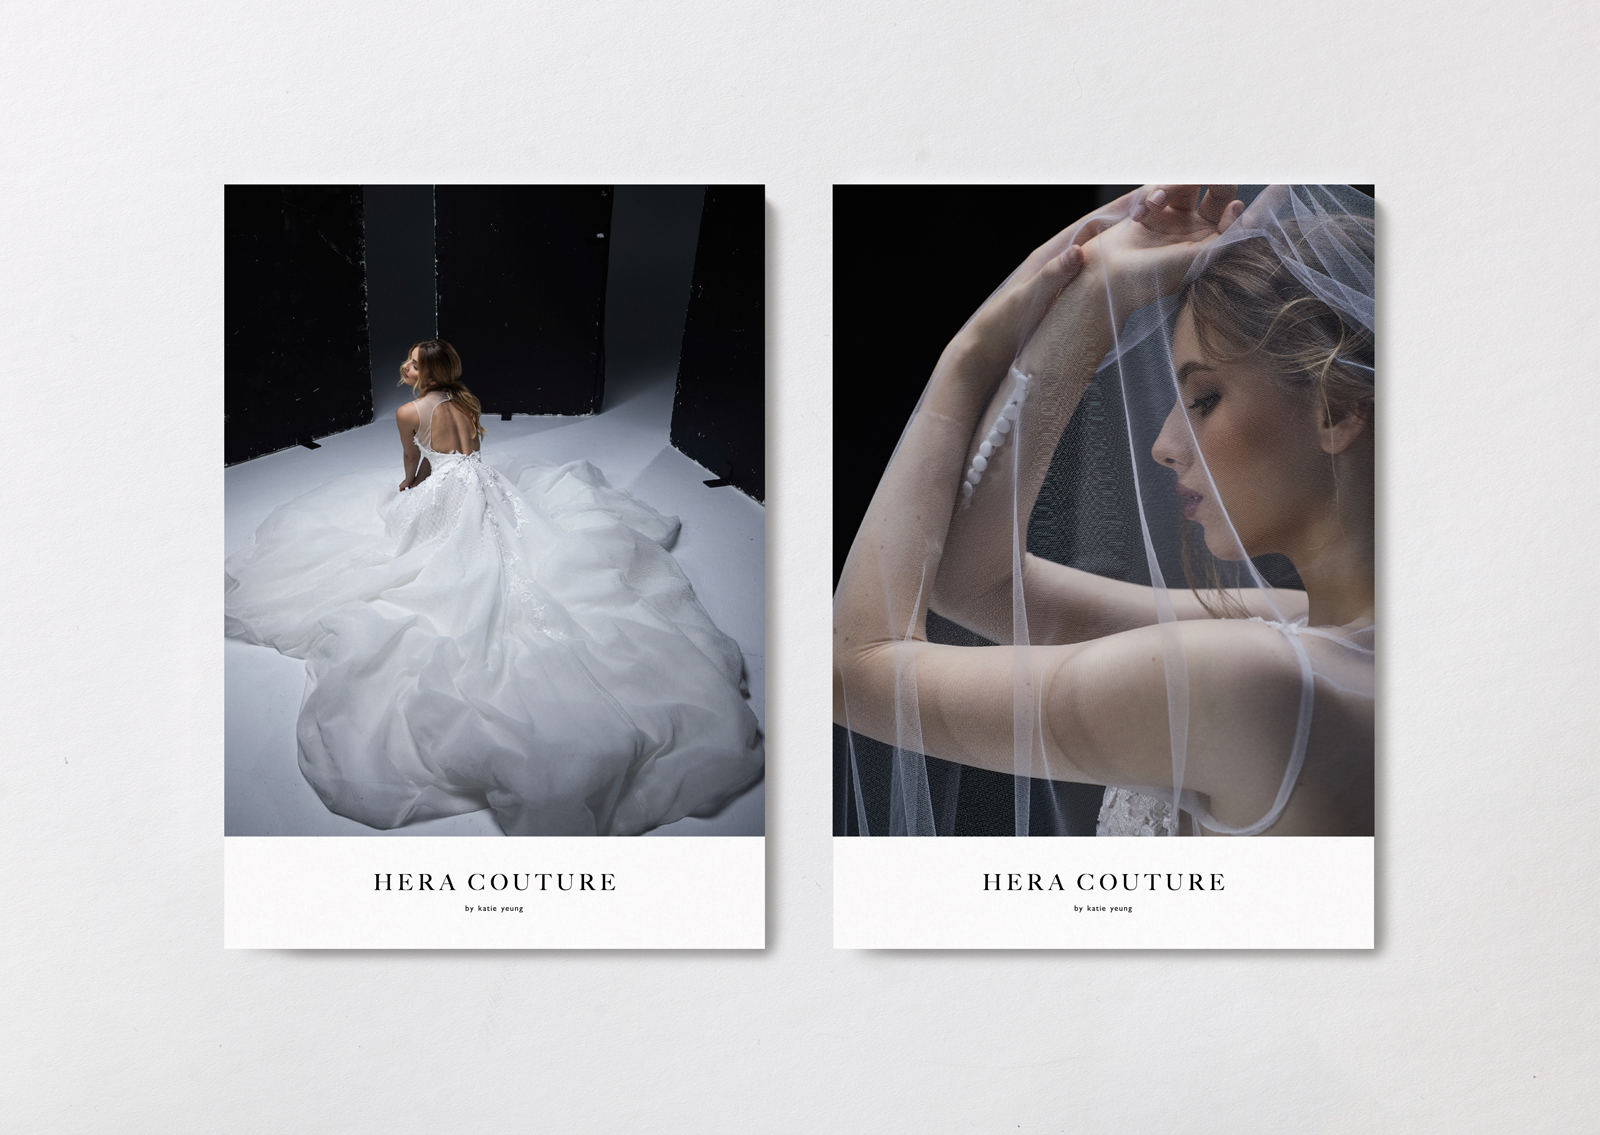 Hera Couture brand postcards – show dramatic gown silhouettes and intricate details